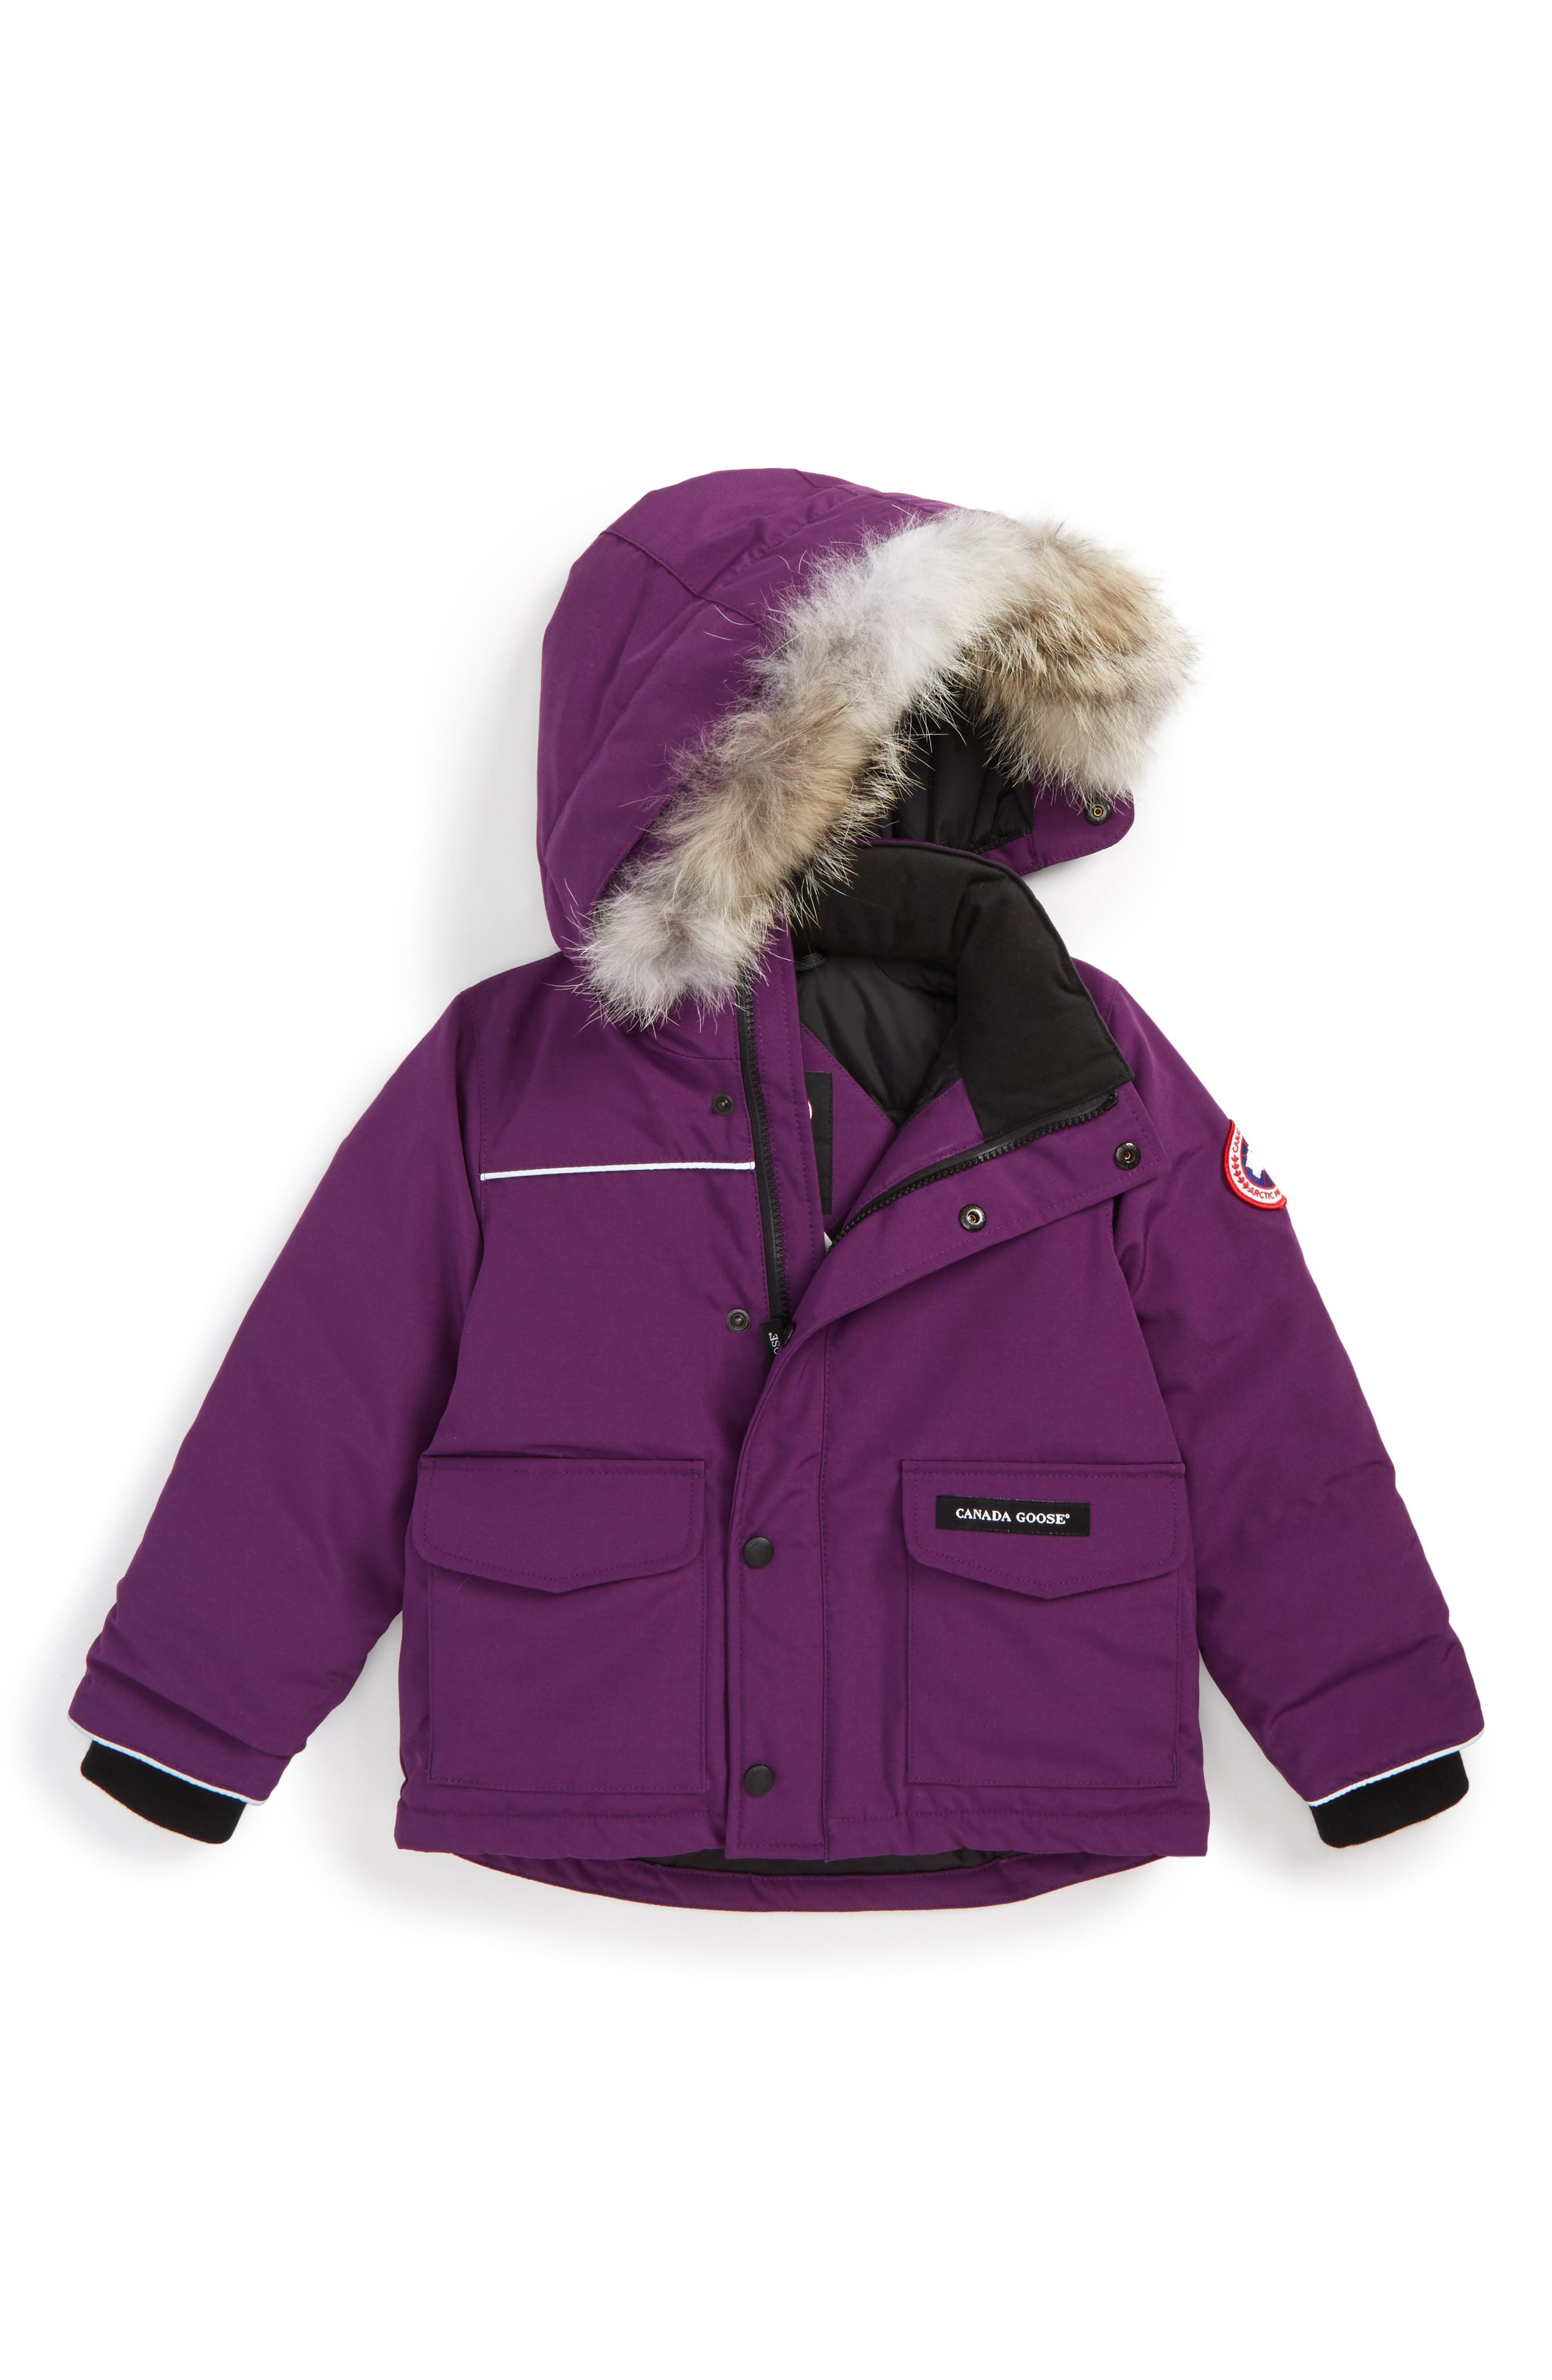 Alternate Image 1 Selected - Canada Goose 'Lynx' Down Parka with Genuine Coyote Fur Trim (Toddler & Little Kids)